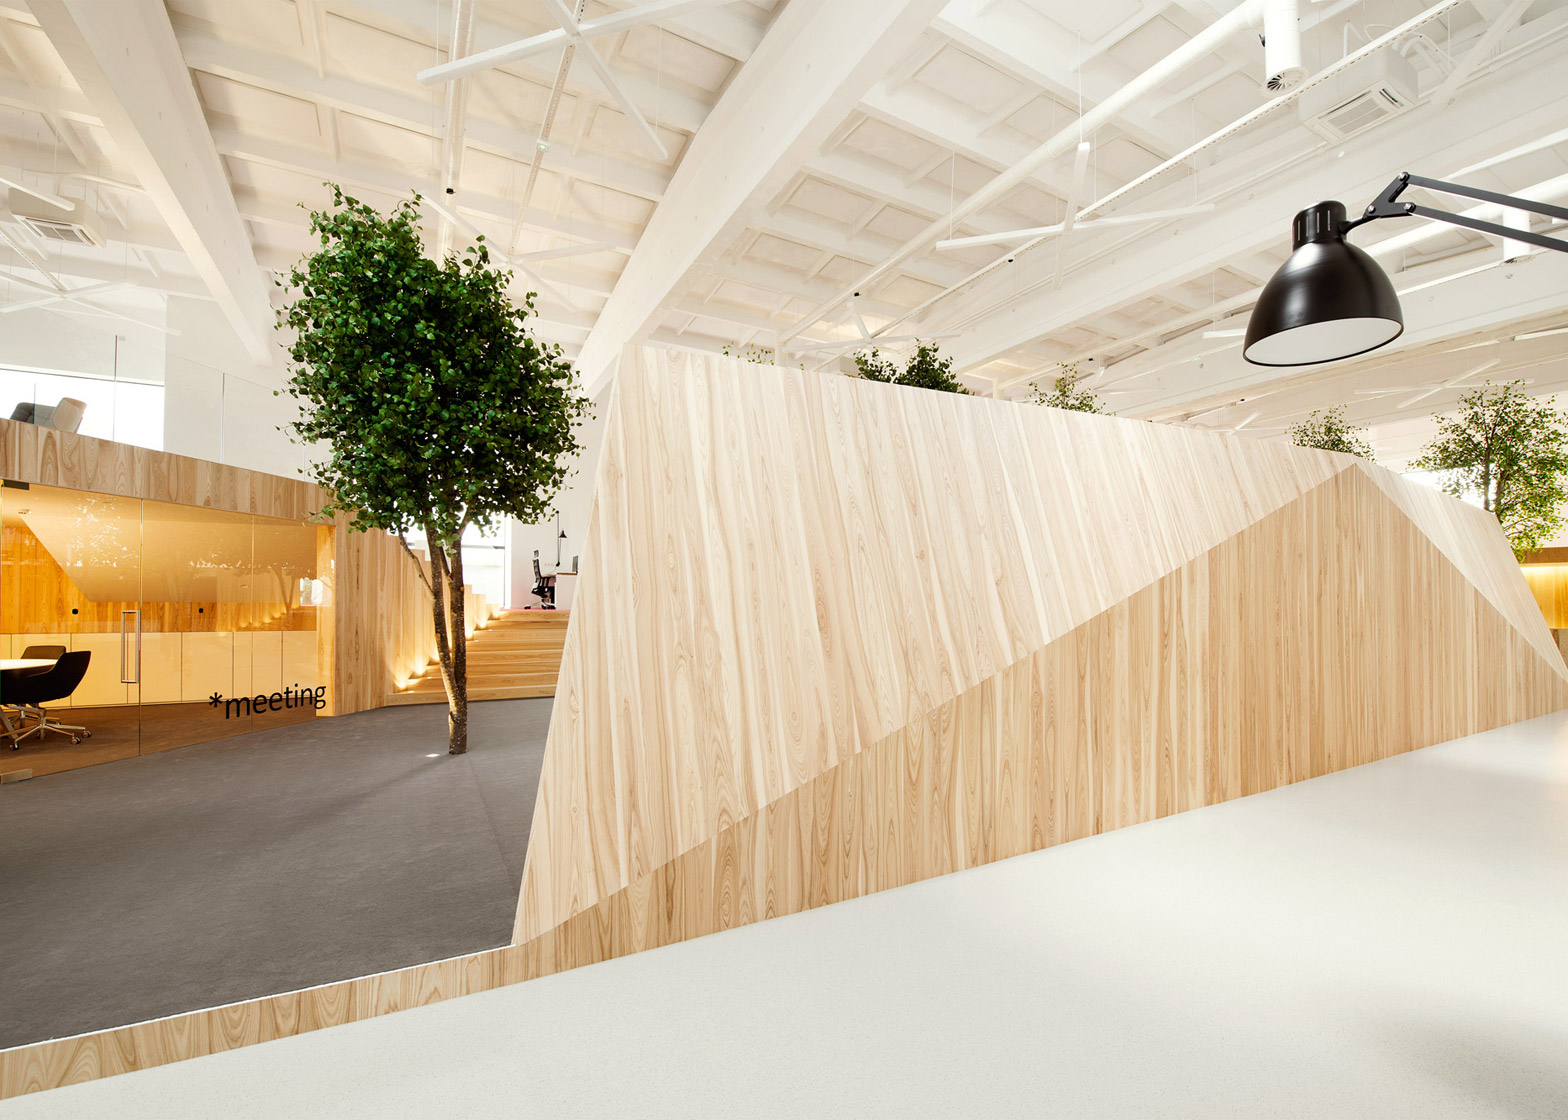 Kamp arhitektid creates tree filled office within former factory